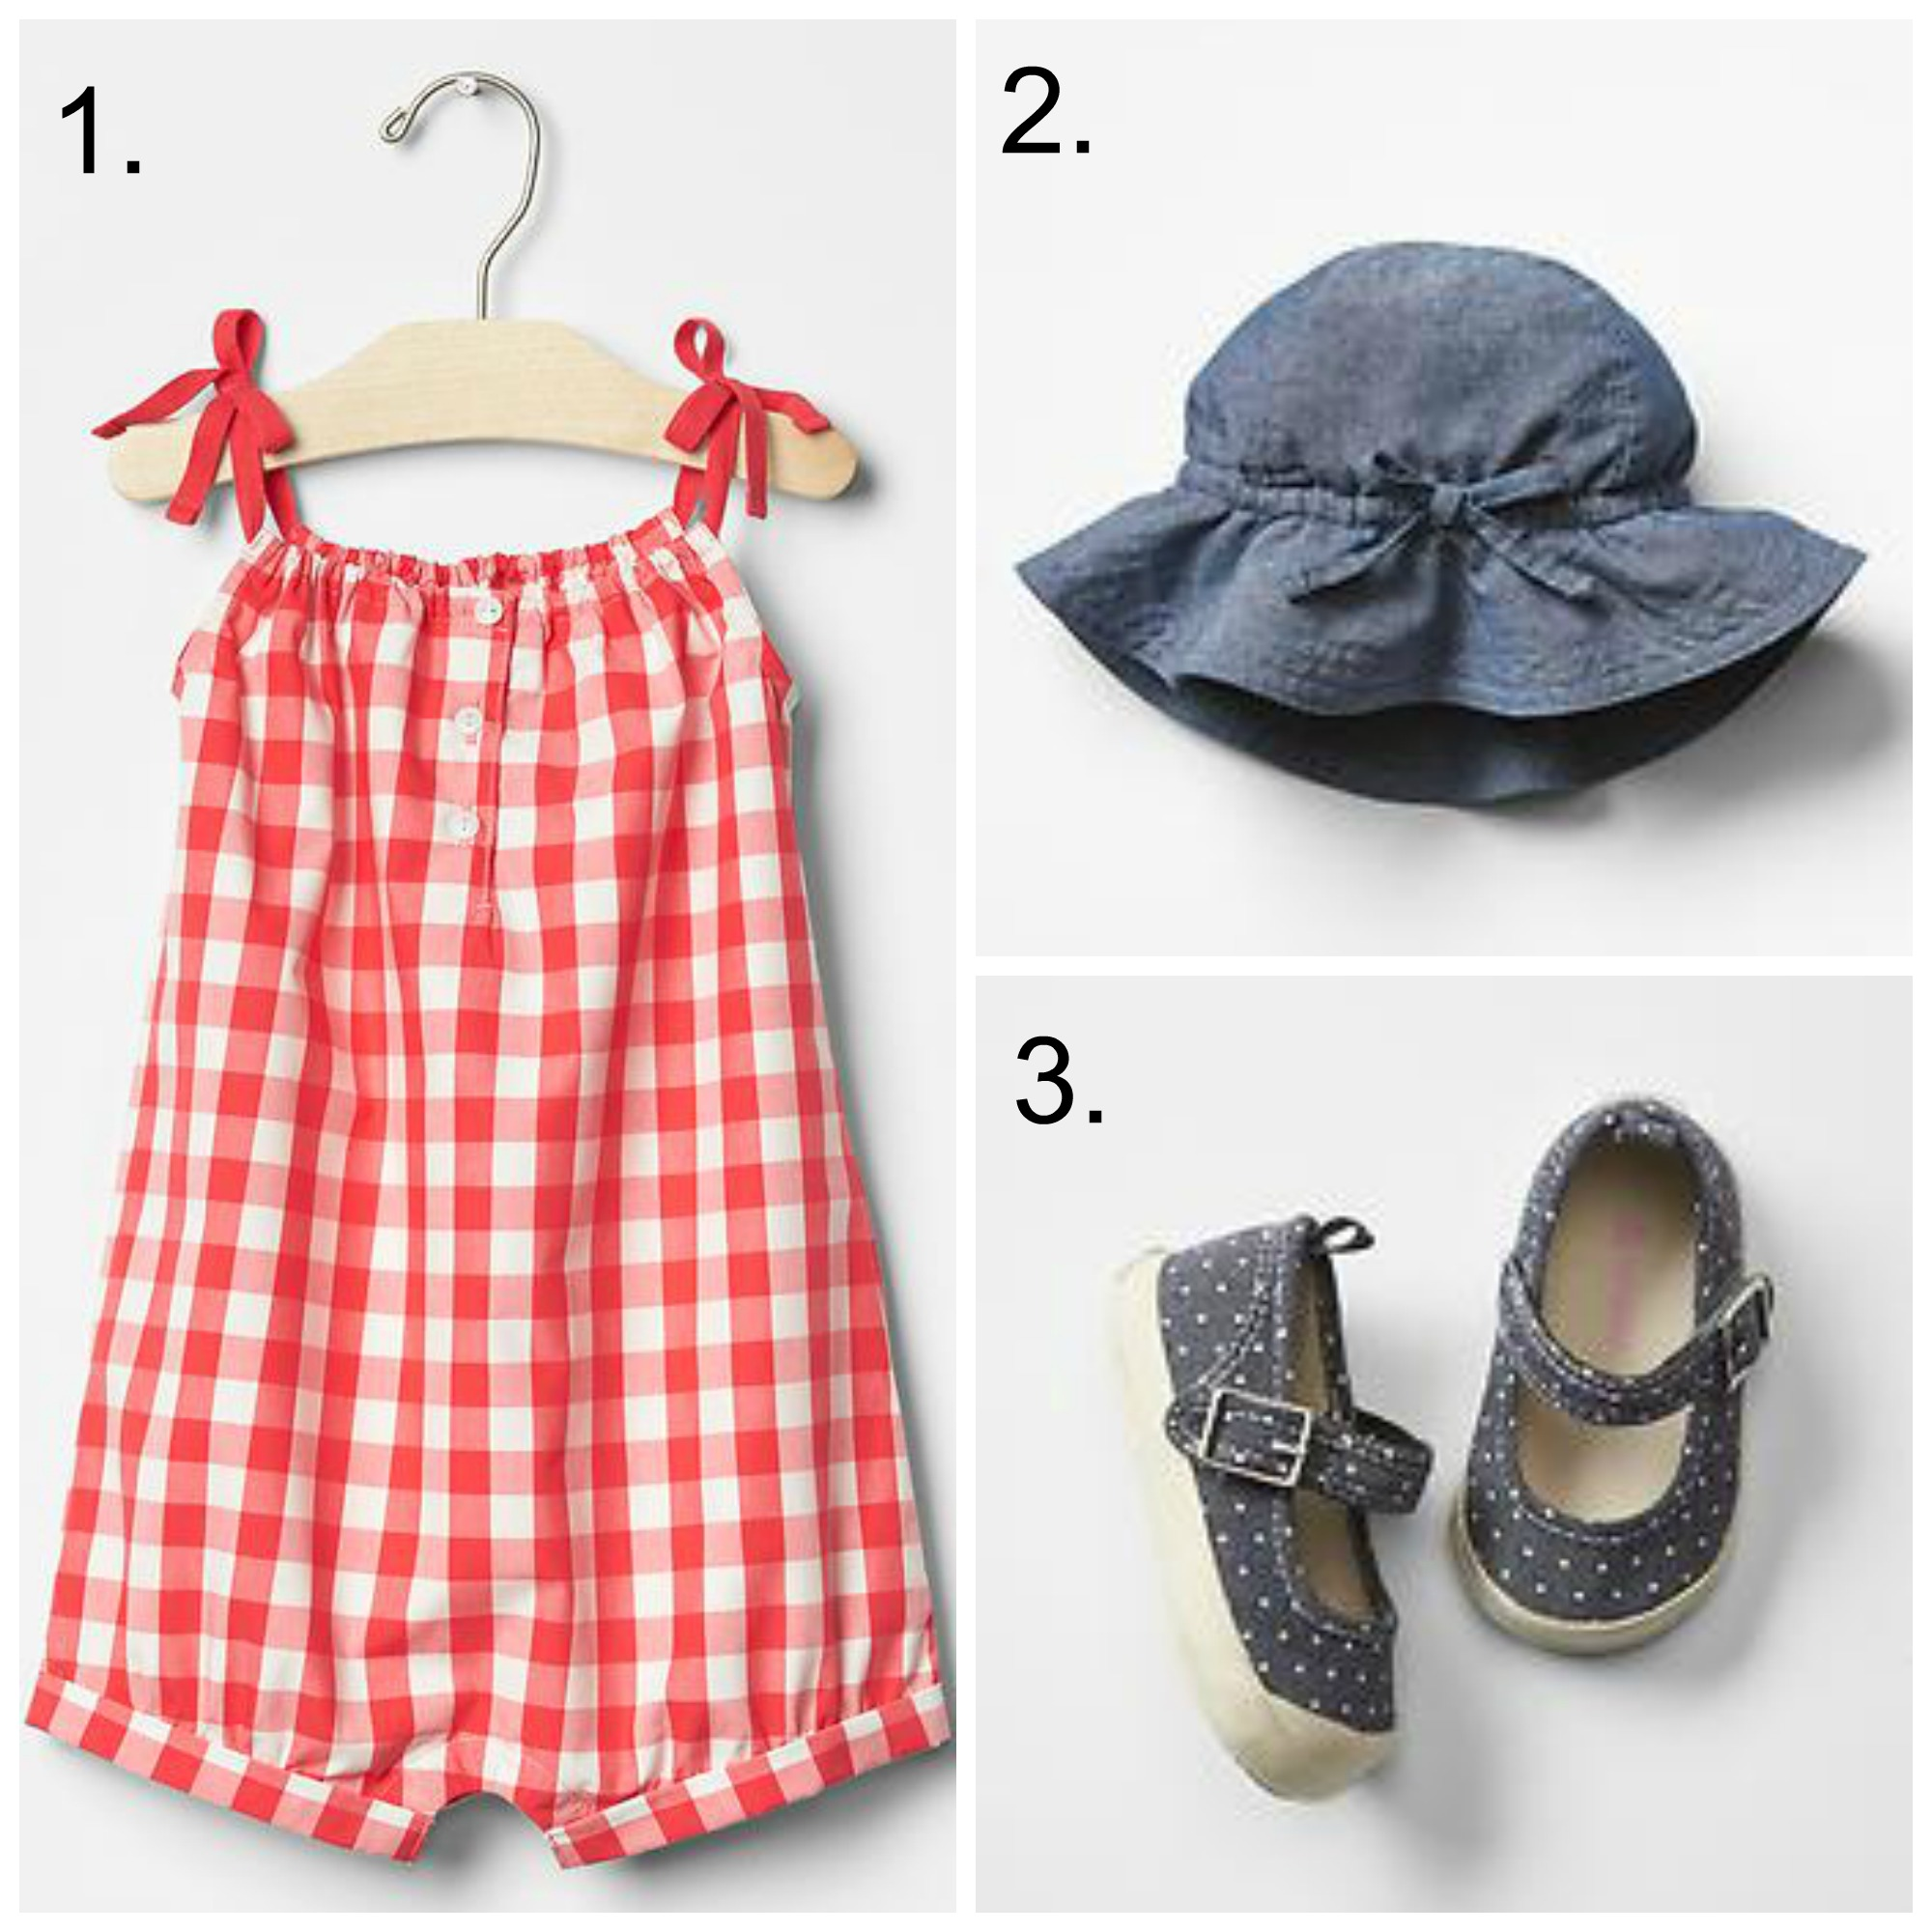 02477b71636 Gap s Spring Baby Collection... - Shelley Loves